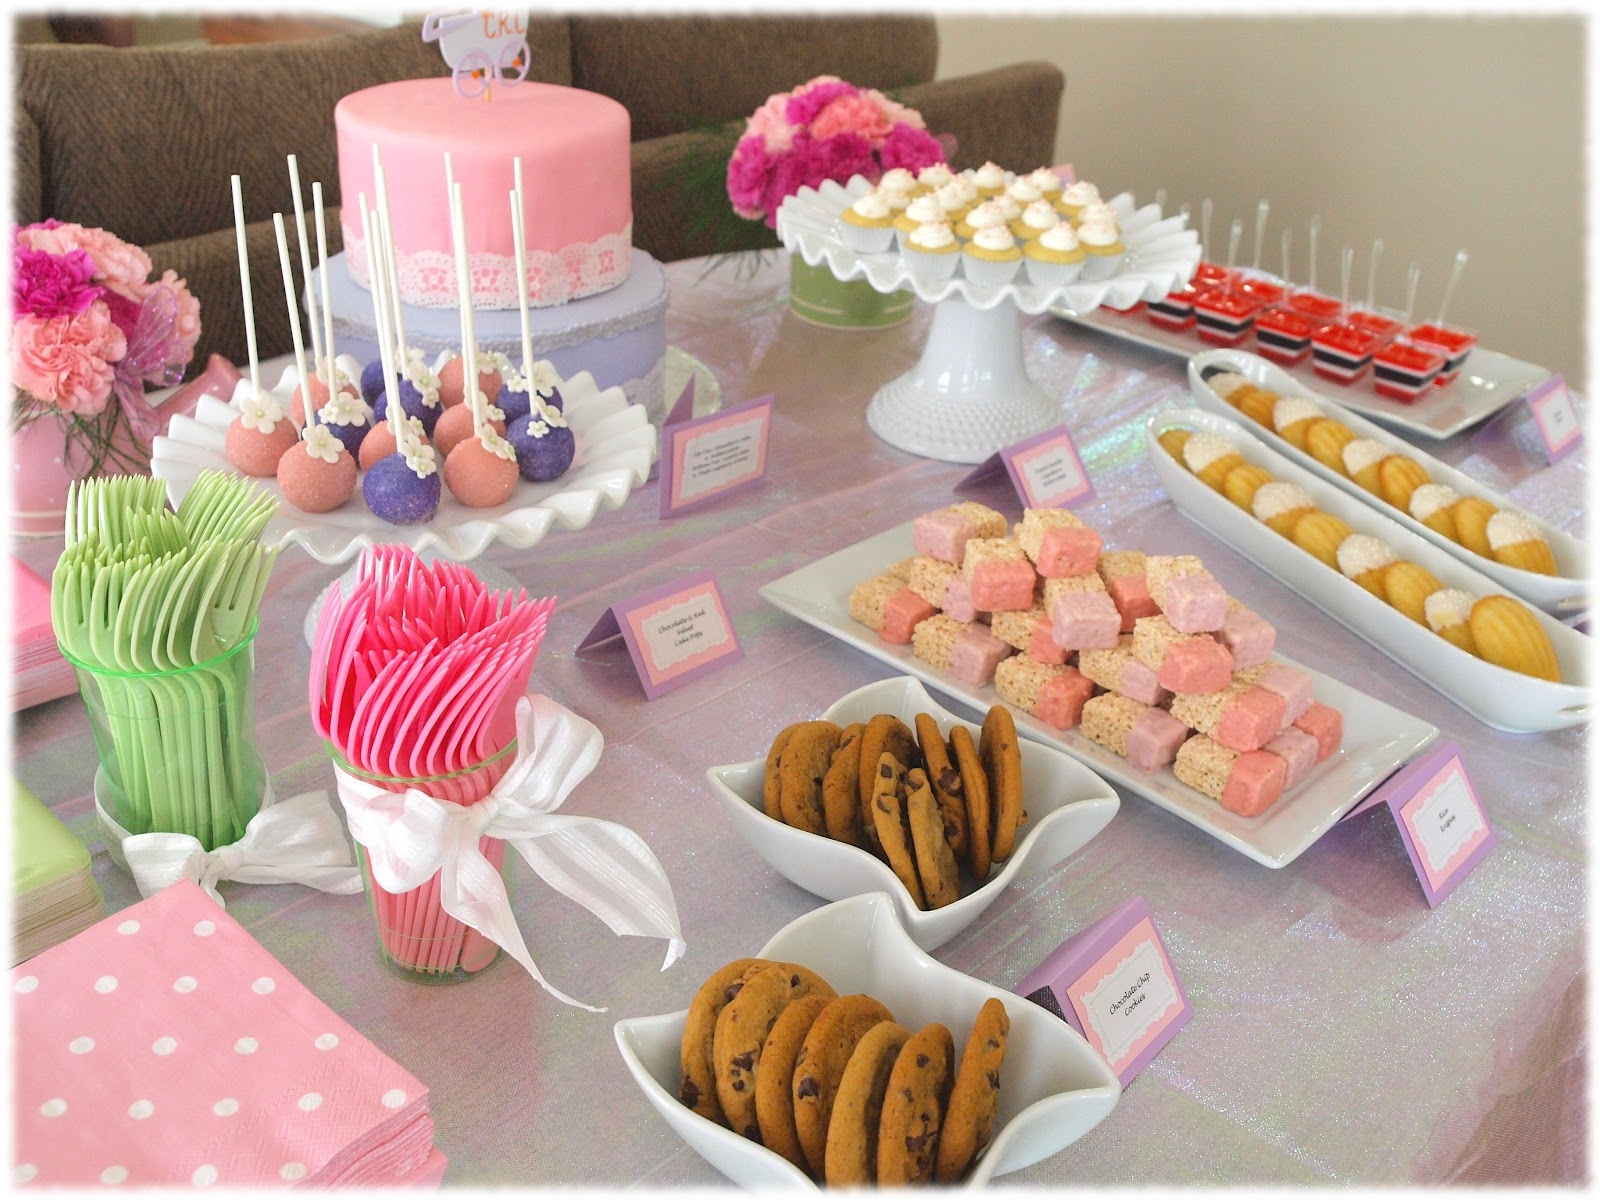 Easy Dessert Recipes For A Baby Shower Baby Showers Design